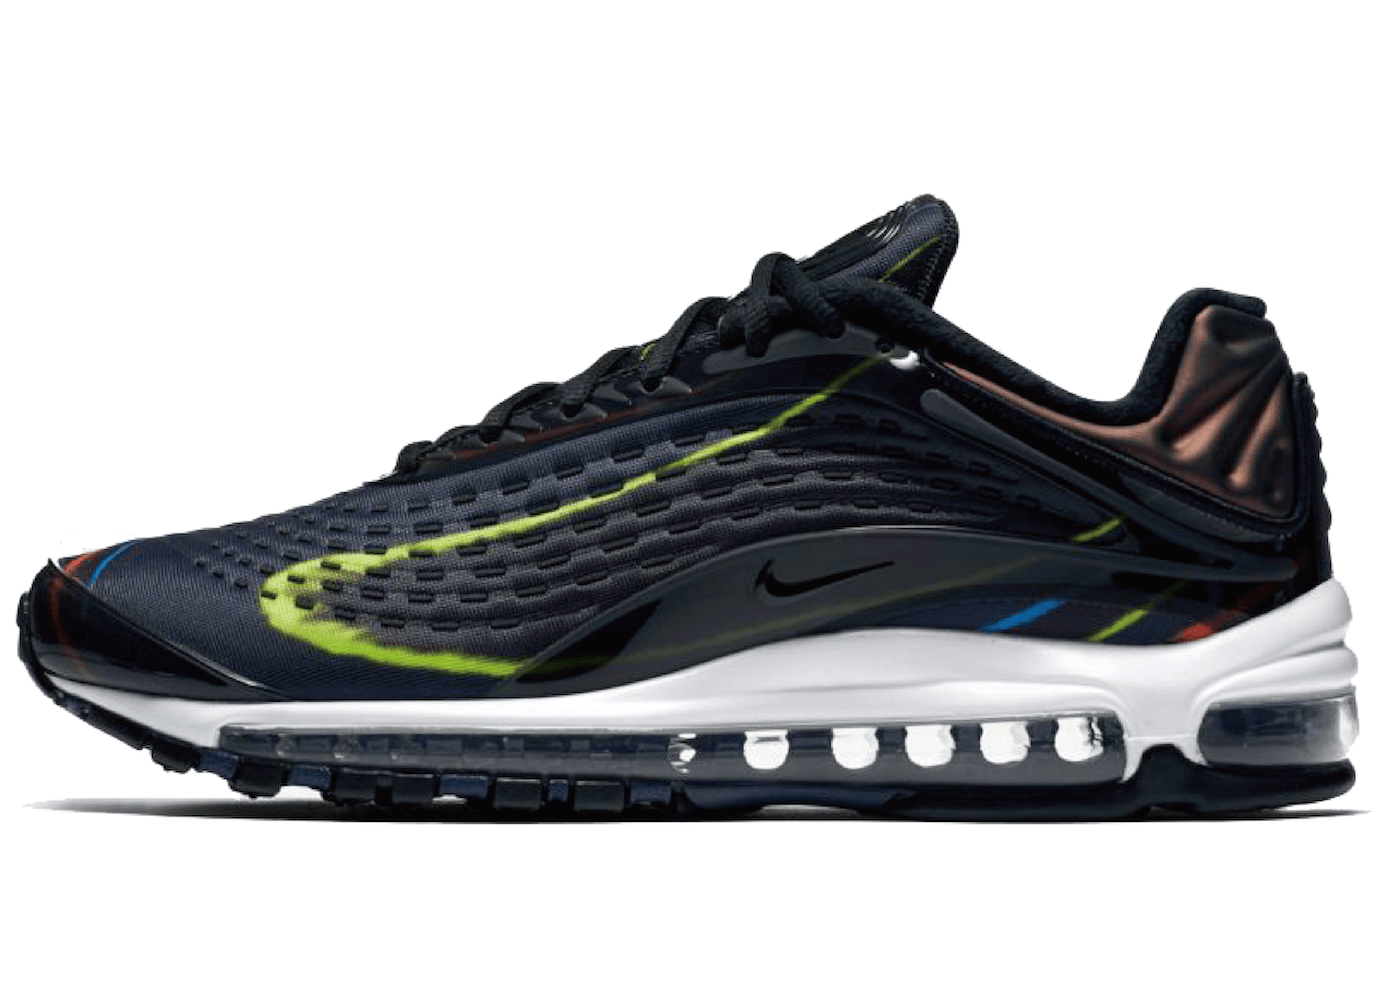 """NIKE AIR MAX DELUXE """"LIFE OF THE PARTY""""の写真"""